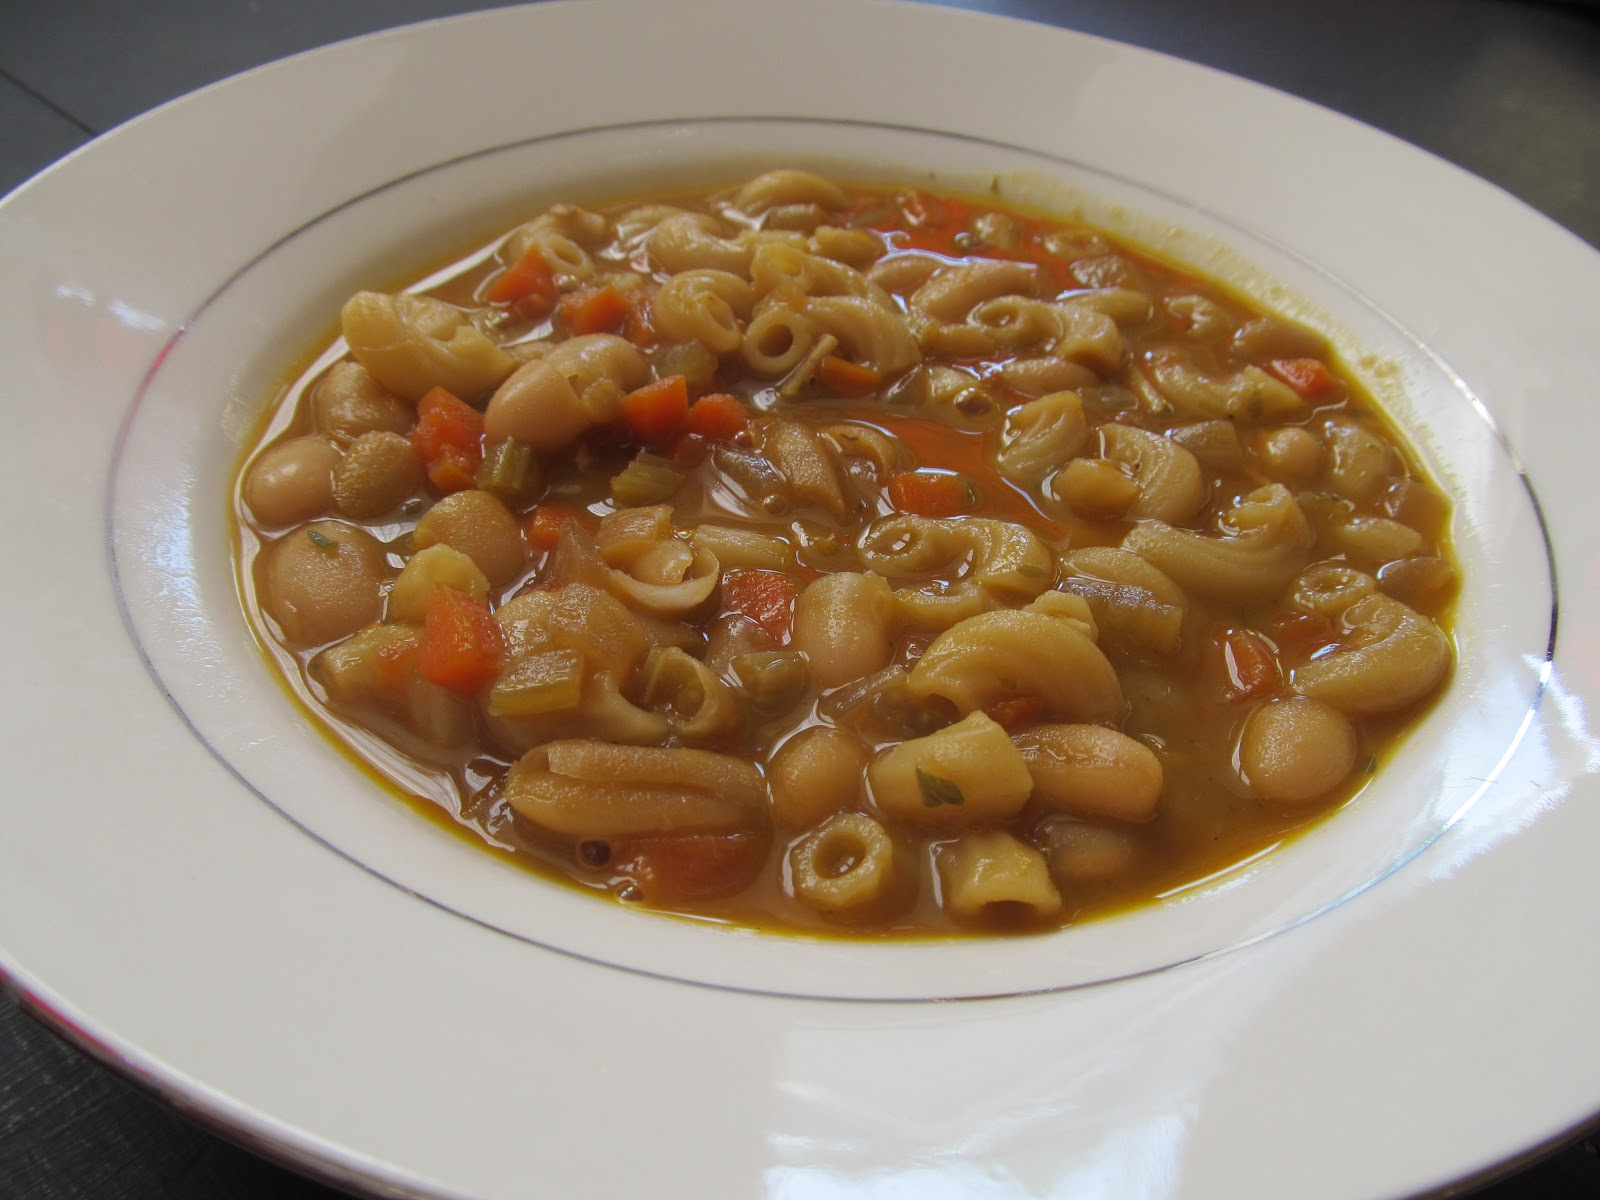 You, Me and B: Recipe - White Bean and Pasta Soup from Epicurious